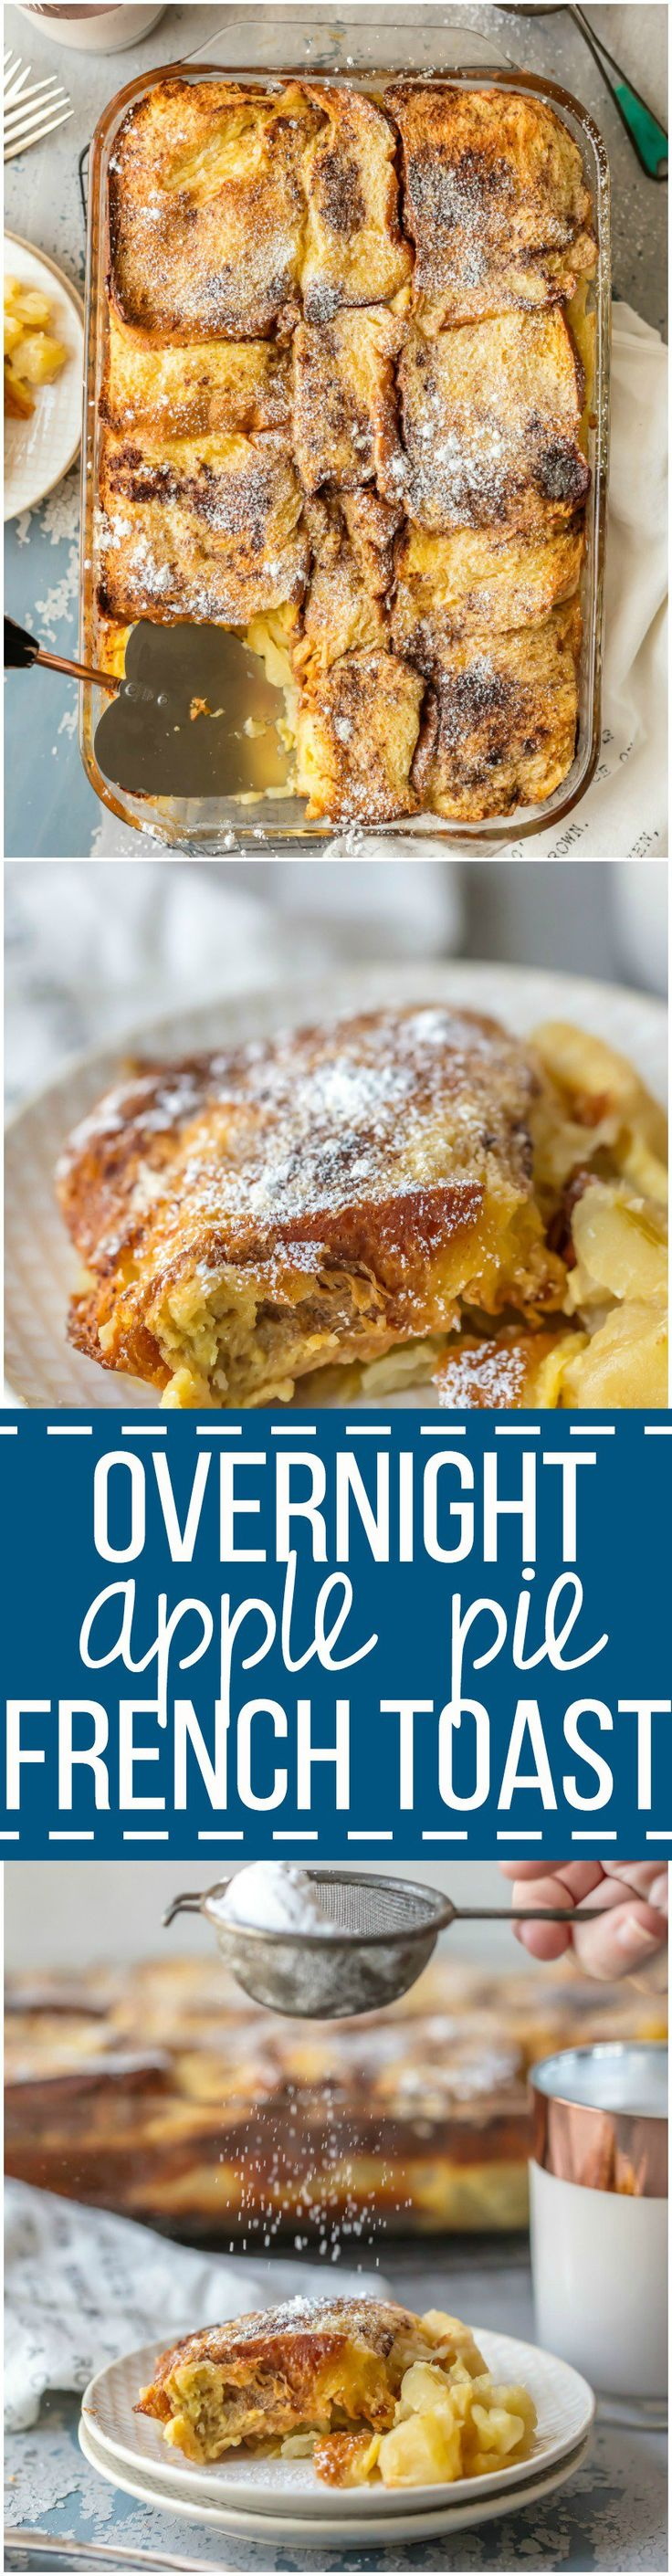 You'll crave this APPLE PIE OVERNIGHT FRENCH TOAST CASSEROLE every morning! It's the perfect make ahead breakfast for guests or your family. Brioche, eggs, apples, spices, and more. Just too good.